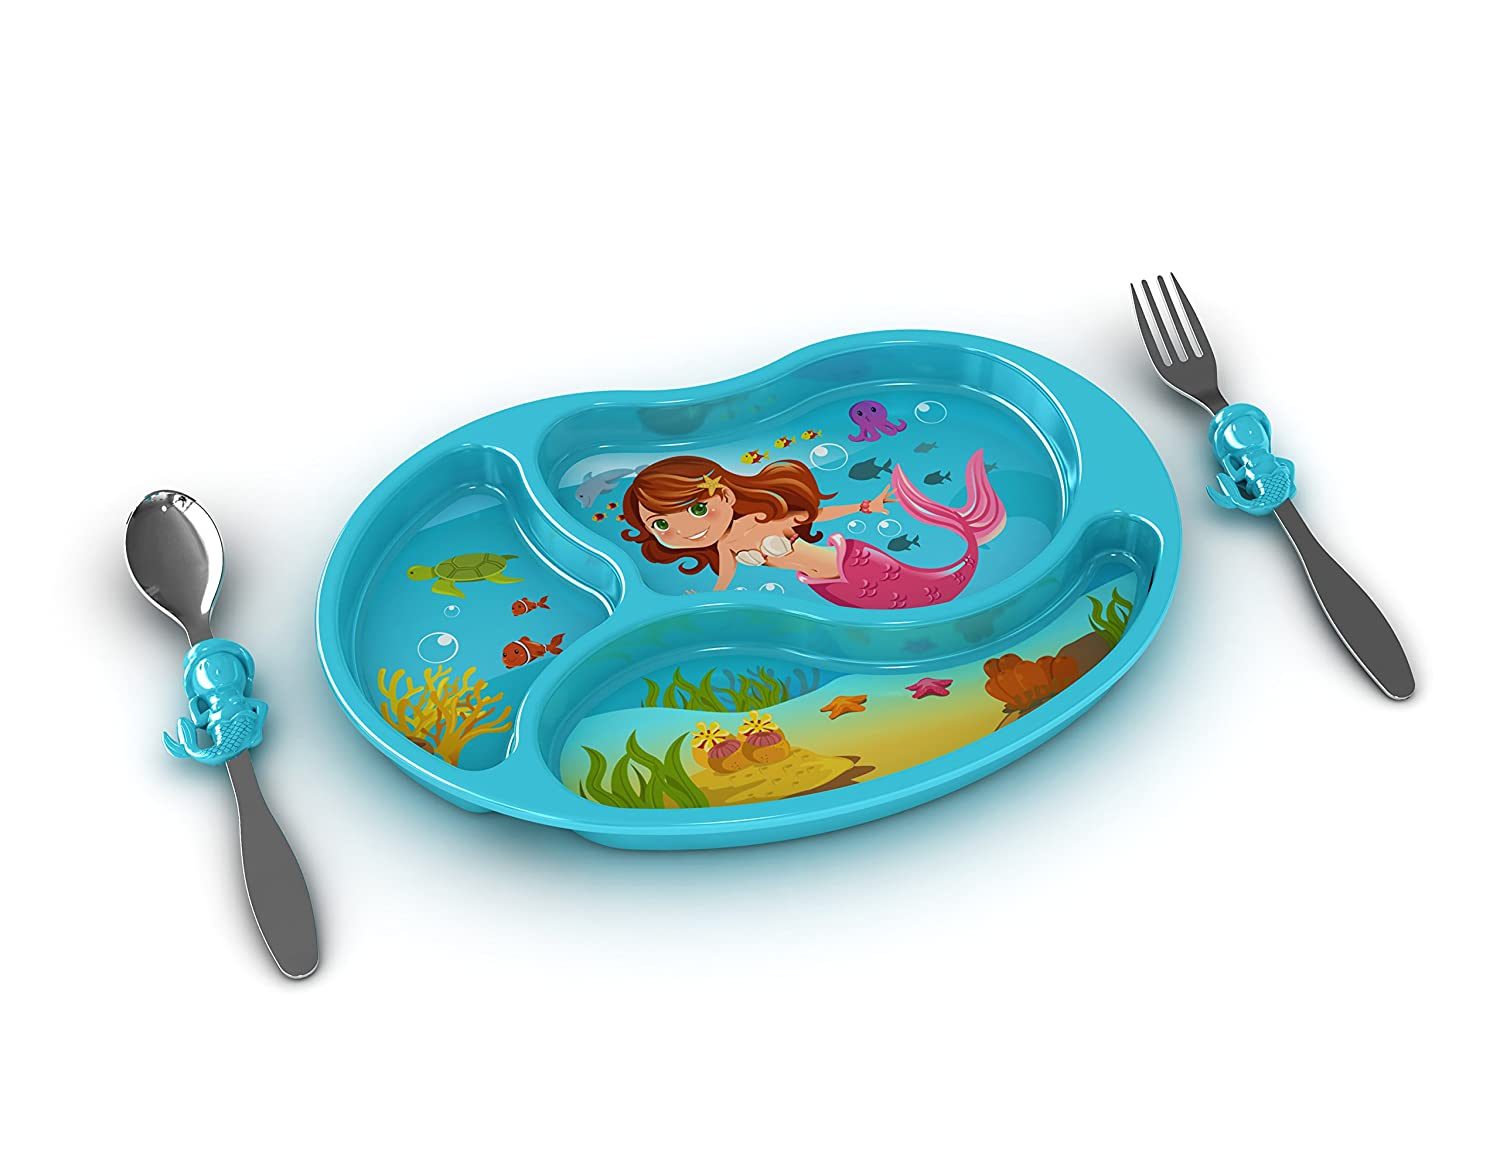 Plate Sparks Your Childs Imagination and Teaches Portion Control - 3-Piece Set for Kids and Toddlers Fork and Spoon That Children Love KidsFunwares Me Time PP Dinnerware Set Mermaid